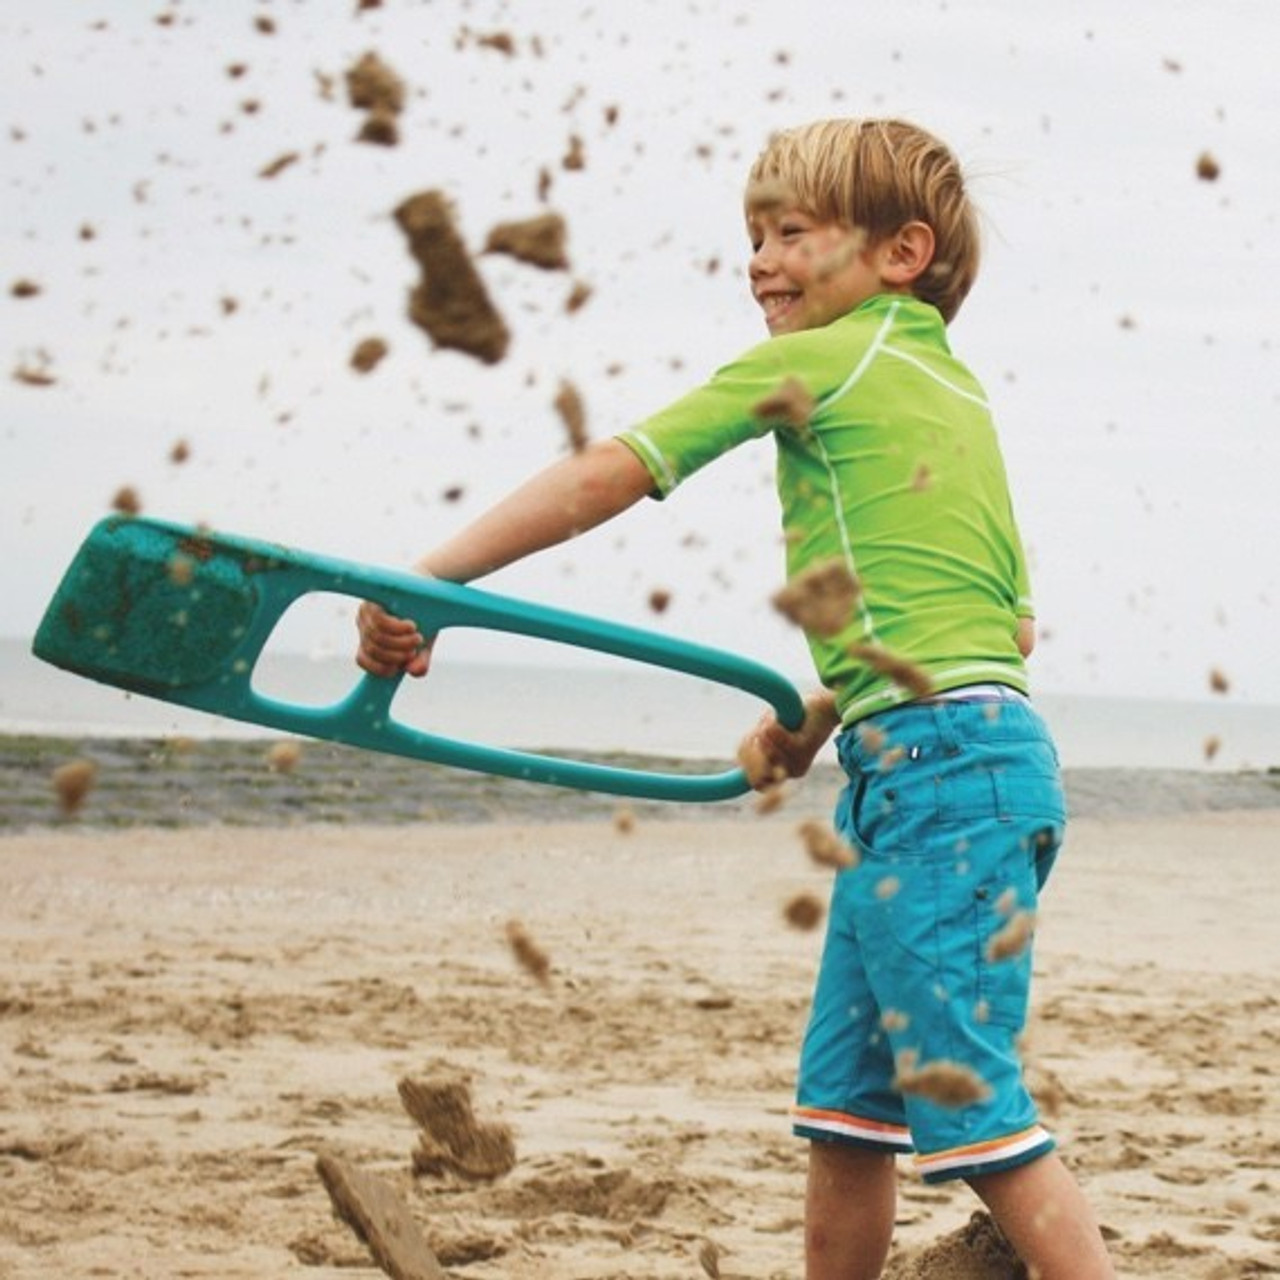 Quut Quutopia Scoppi Lagoon Green at Baby Barn Discounts Scoppi Sand Scoop makes it perfectly clear that kids can make great games out of moving sand.